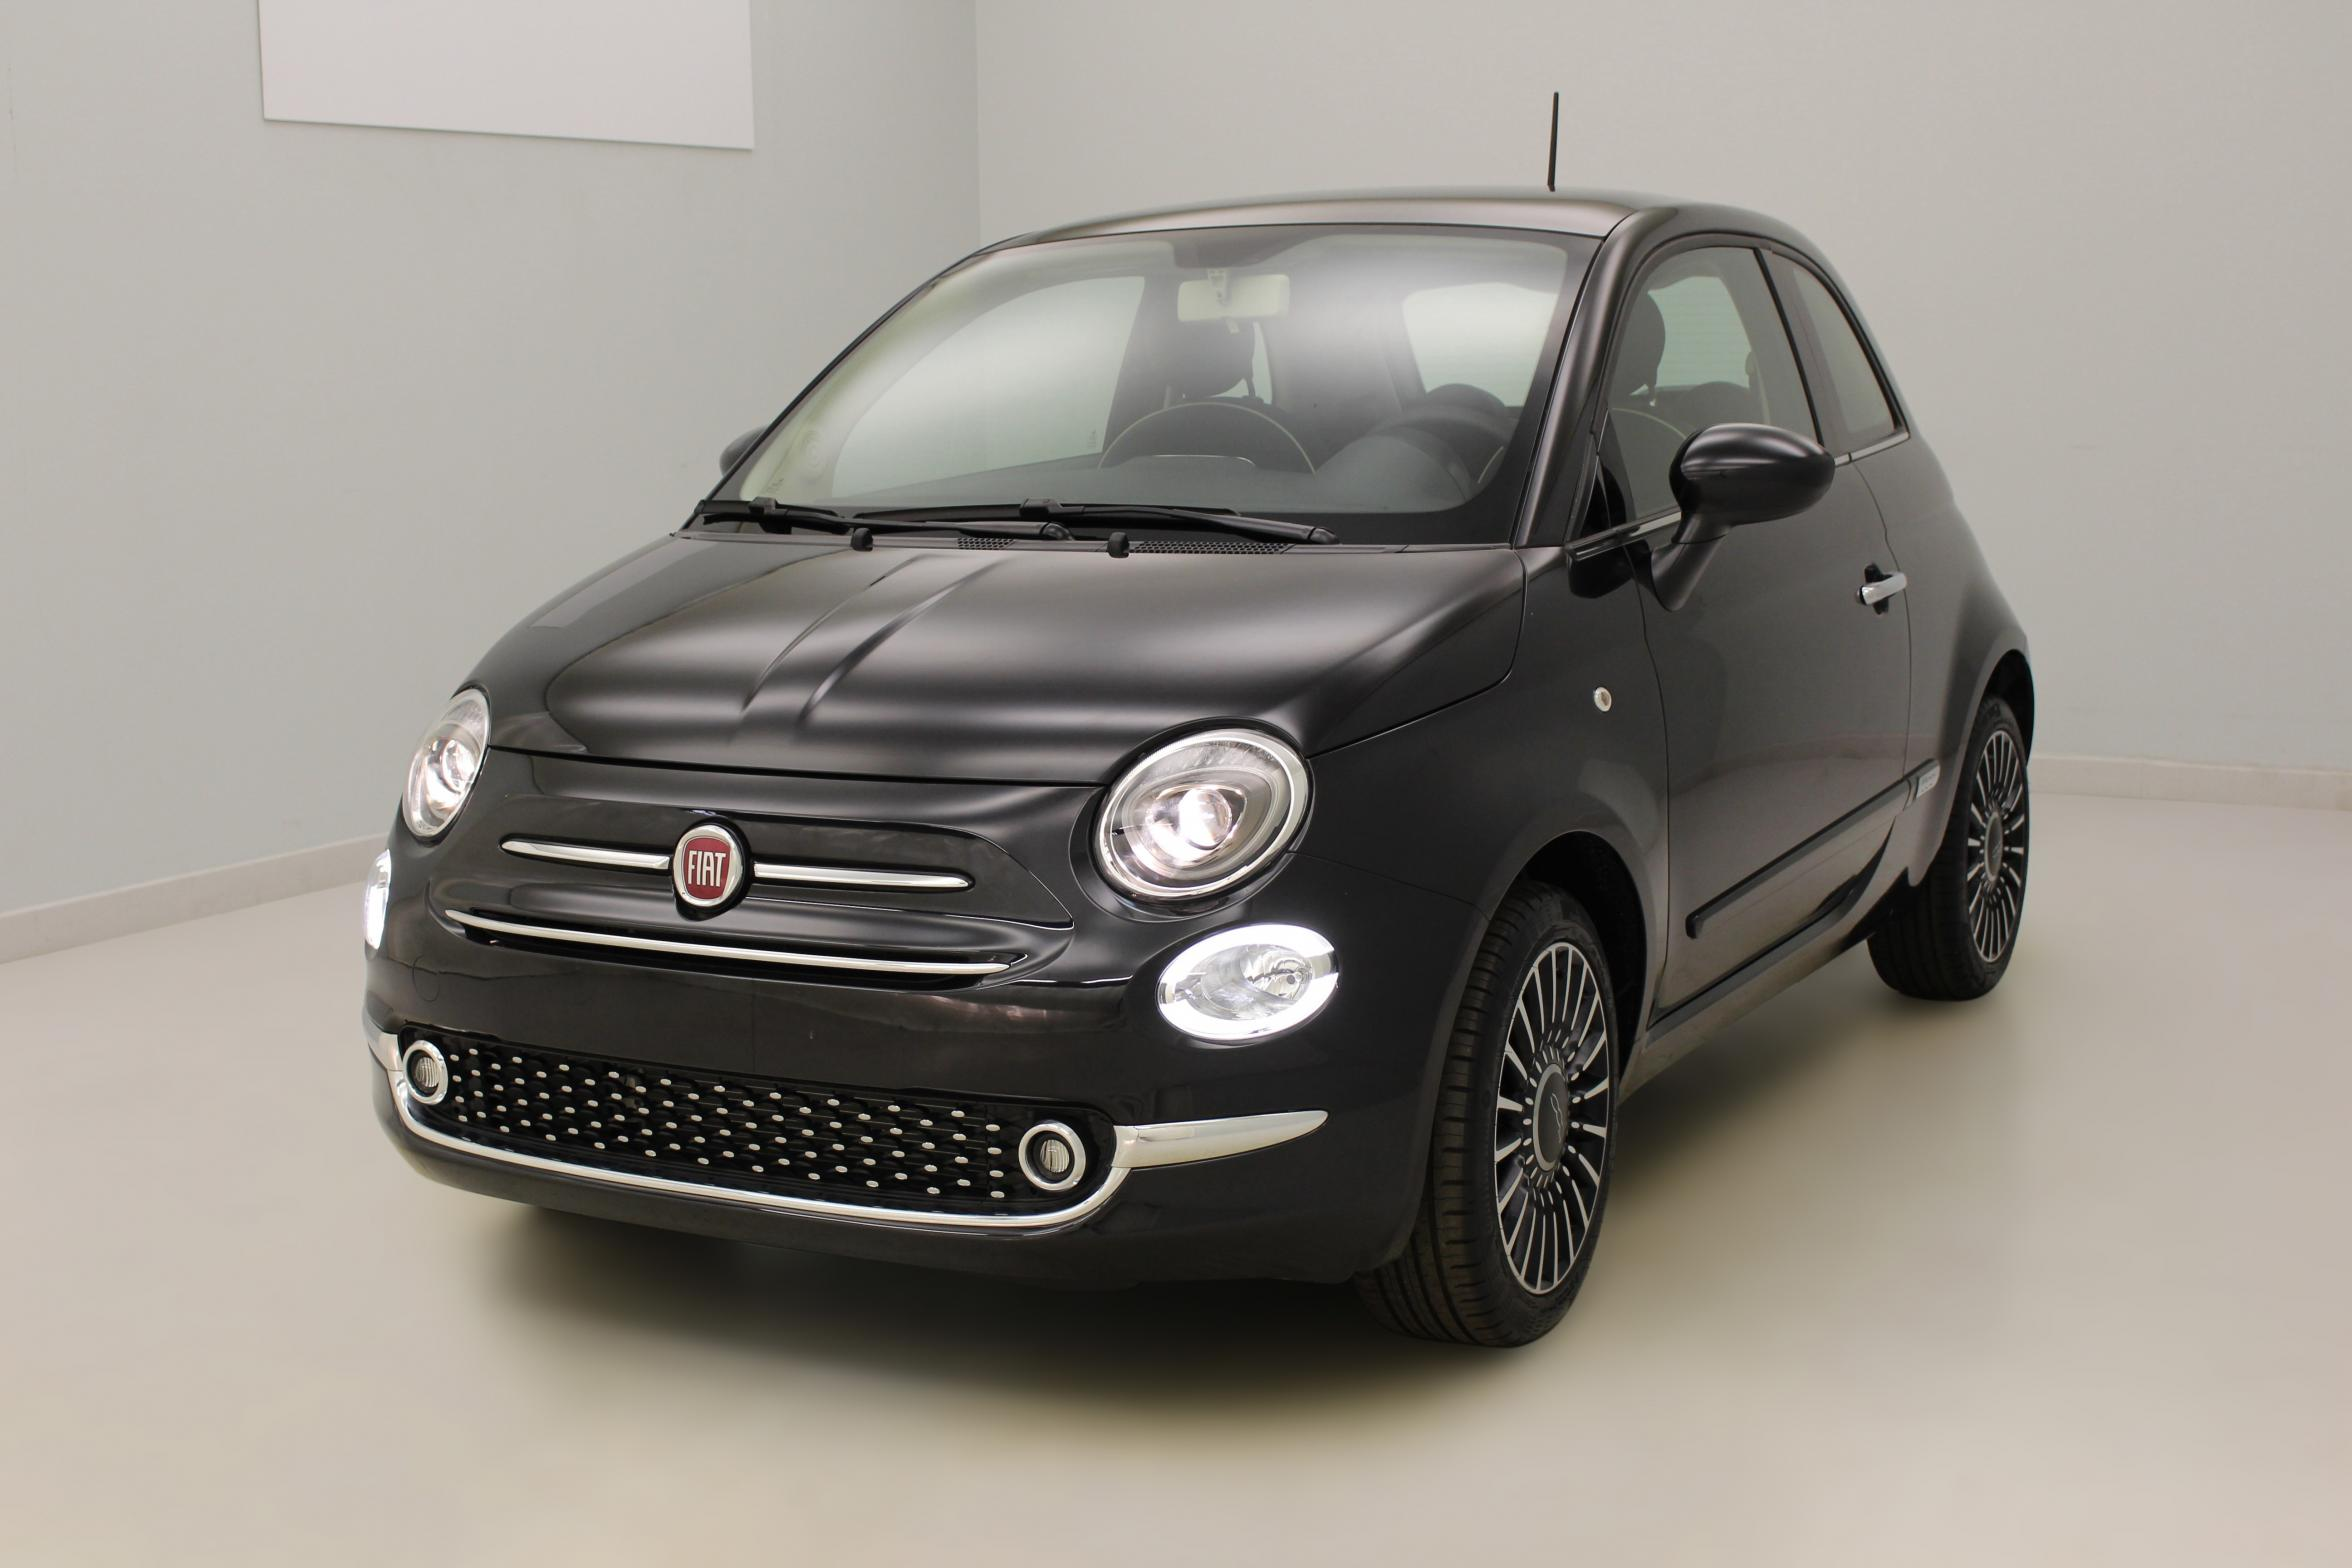 "FIAT 500 1.2 69 ch Popstar Crossover Black + Jantes alliage 16"" New Club+ Climatisation automatique avec options"